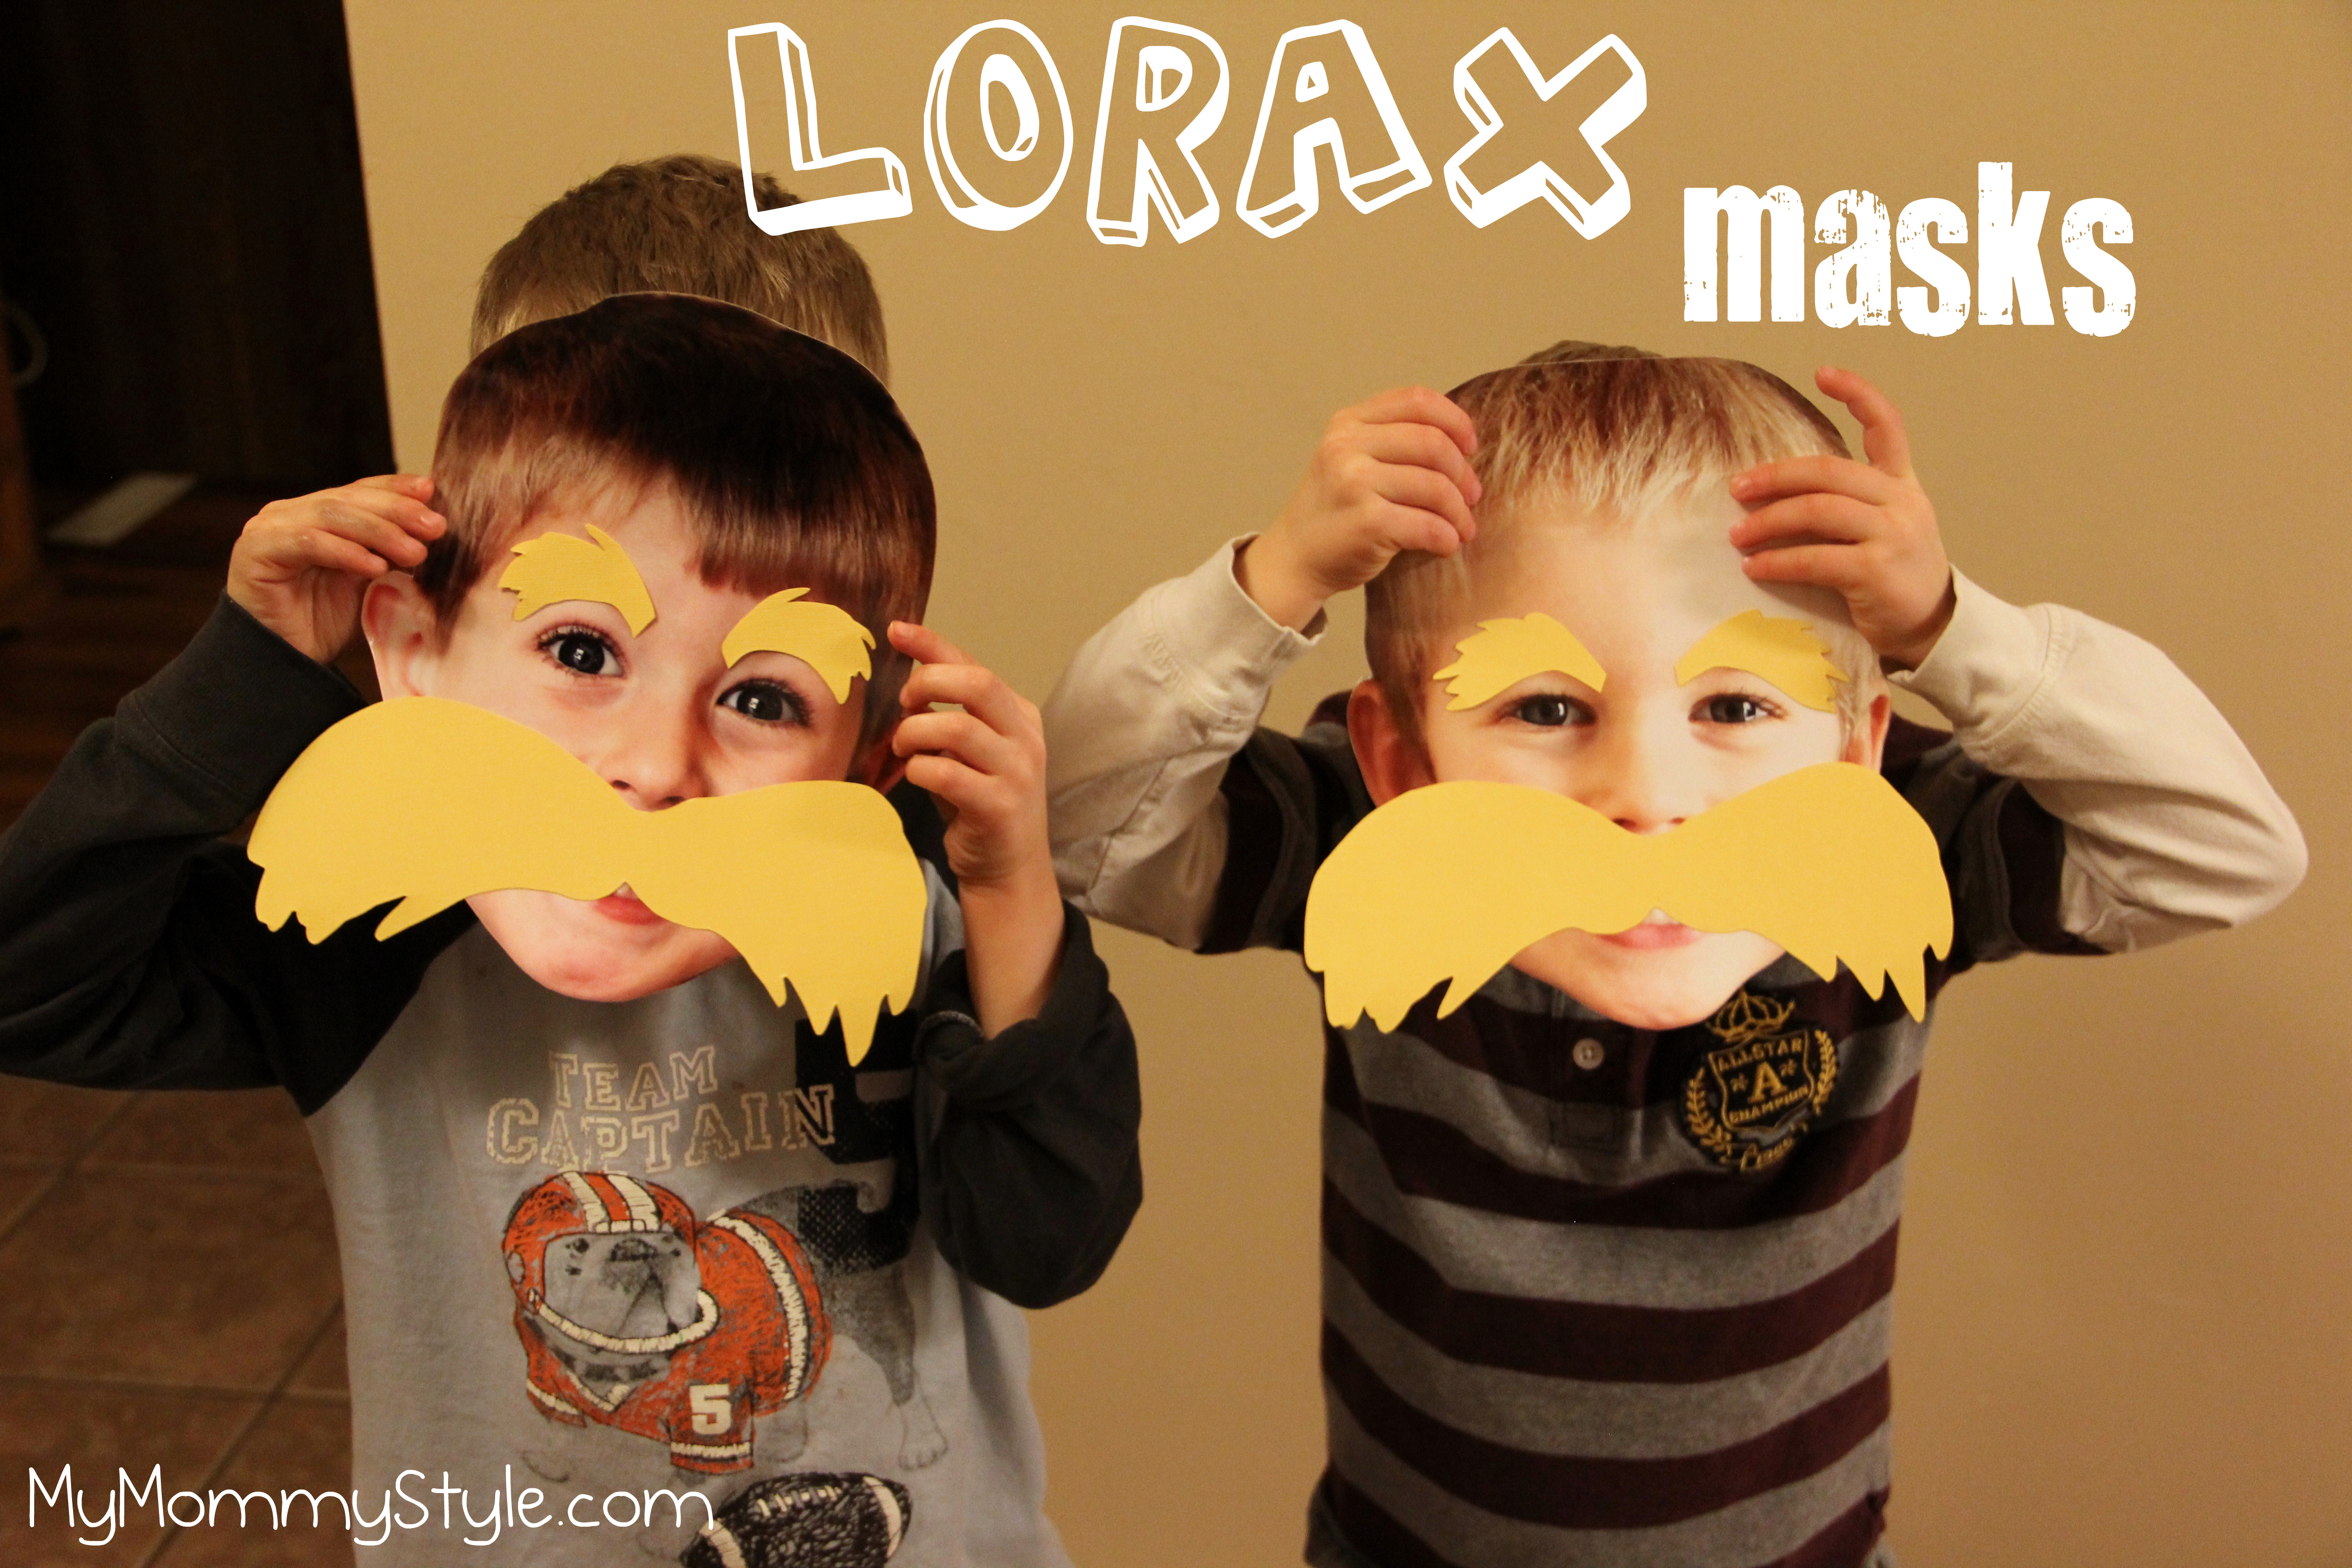 Lorax Masks My Mommy Style